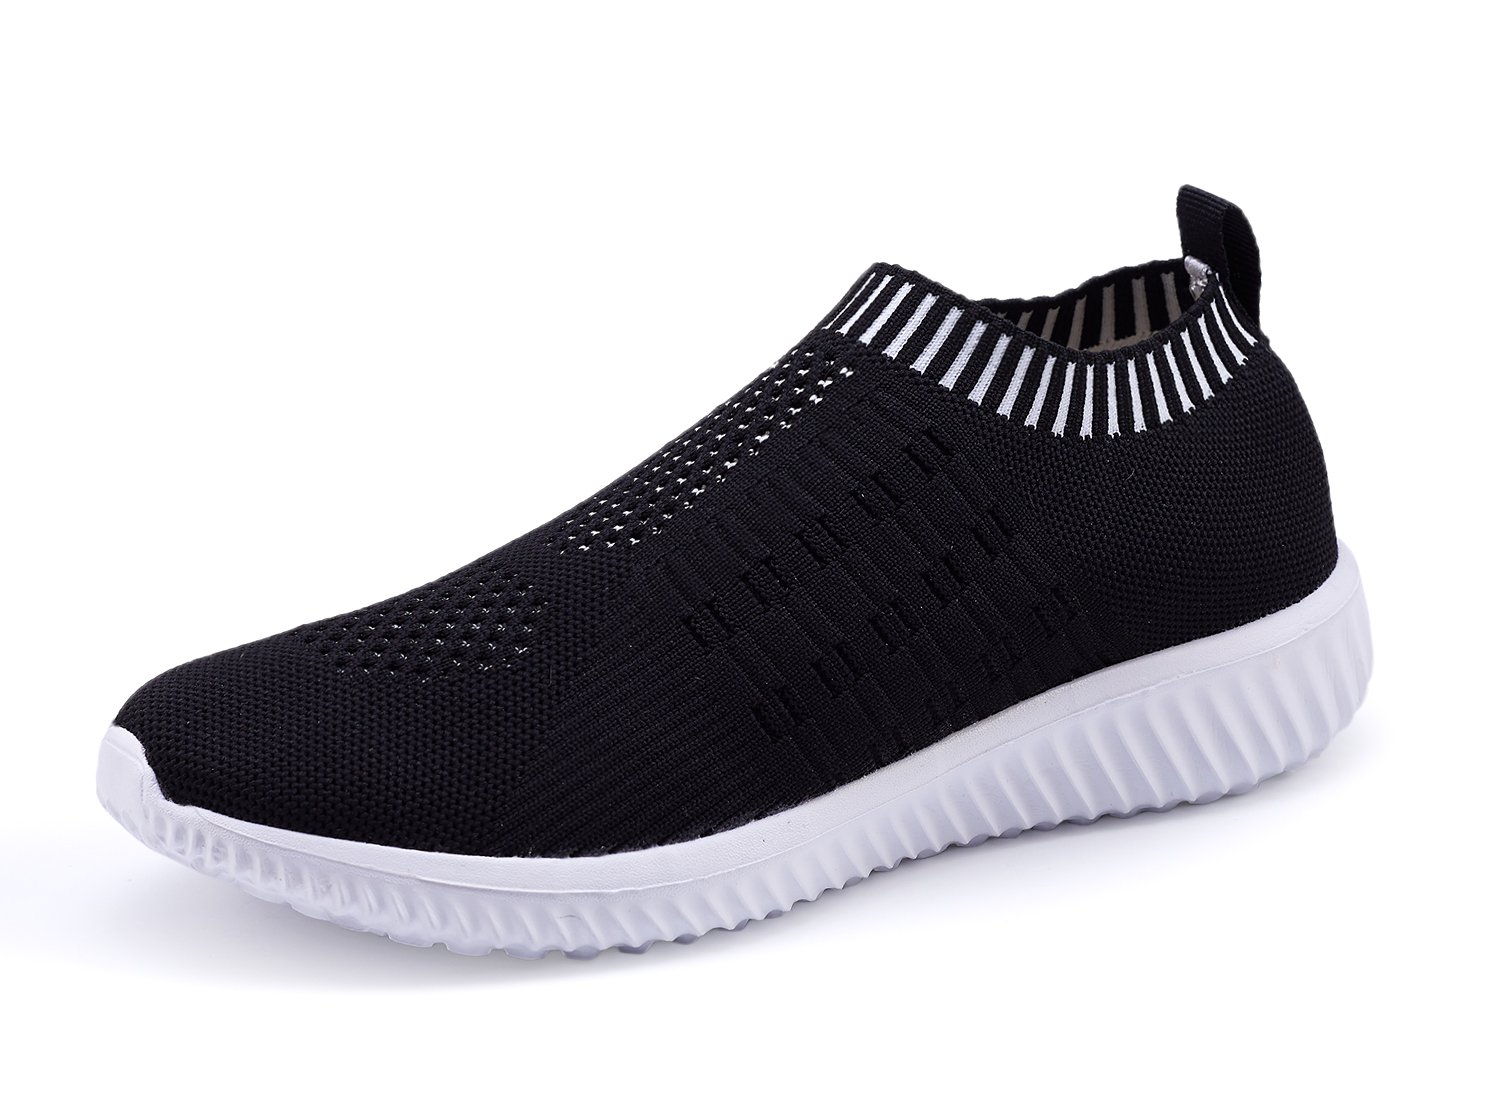 XMDR Women's Fashion Sneakers Breathable Mesh Casual Sport Shoes Comfortable Walking Shoes Black 41